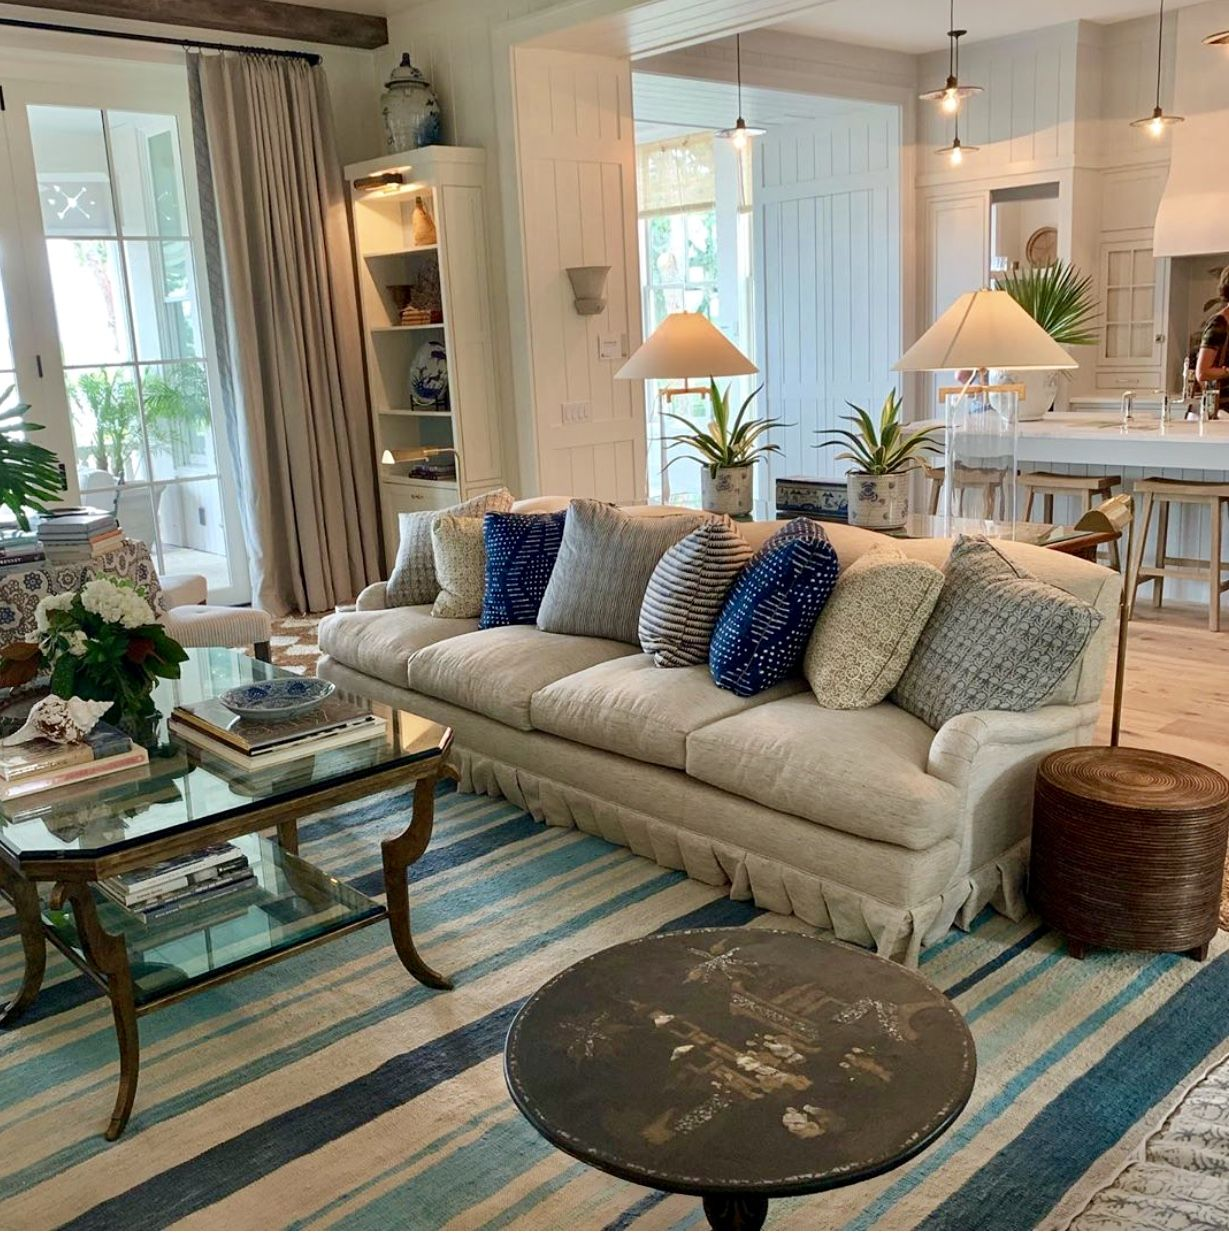 God's | Southern living homes, Living room decor apartment ...